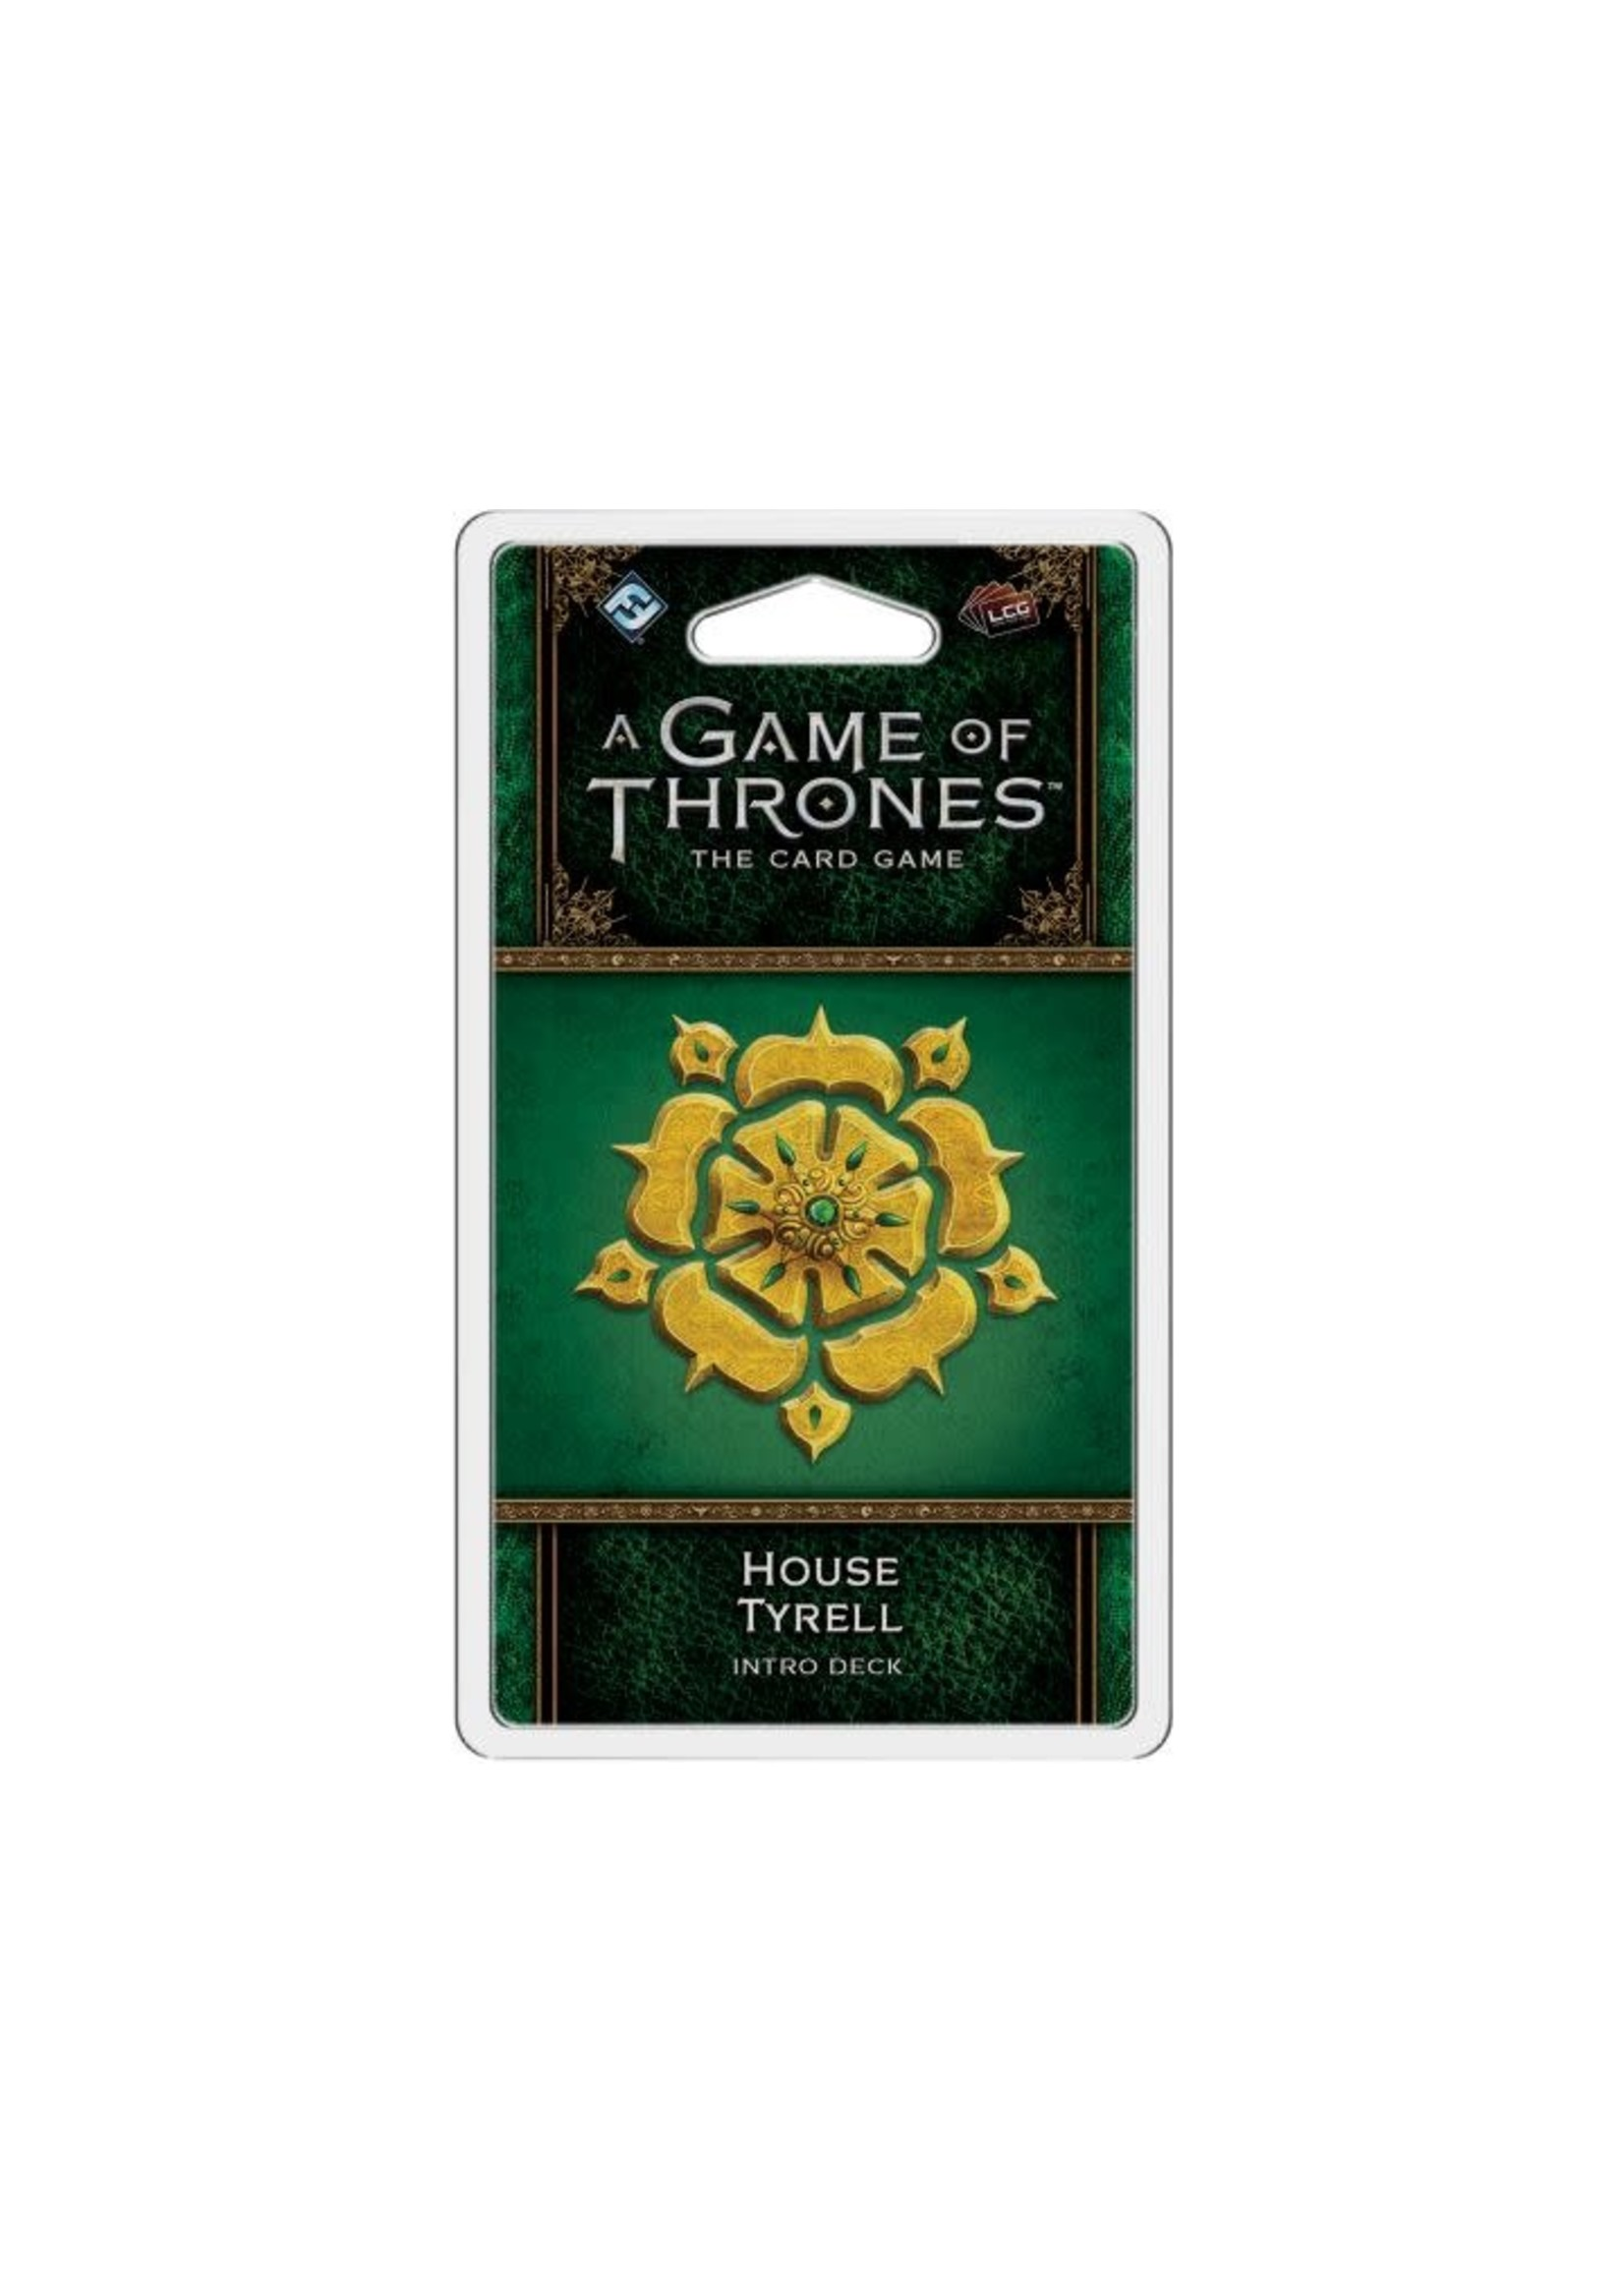 A Game Of Thrones Lcg 2Nd Edition: House Tyrell Intro Deck